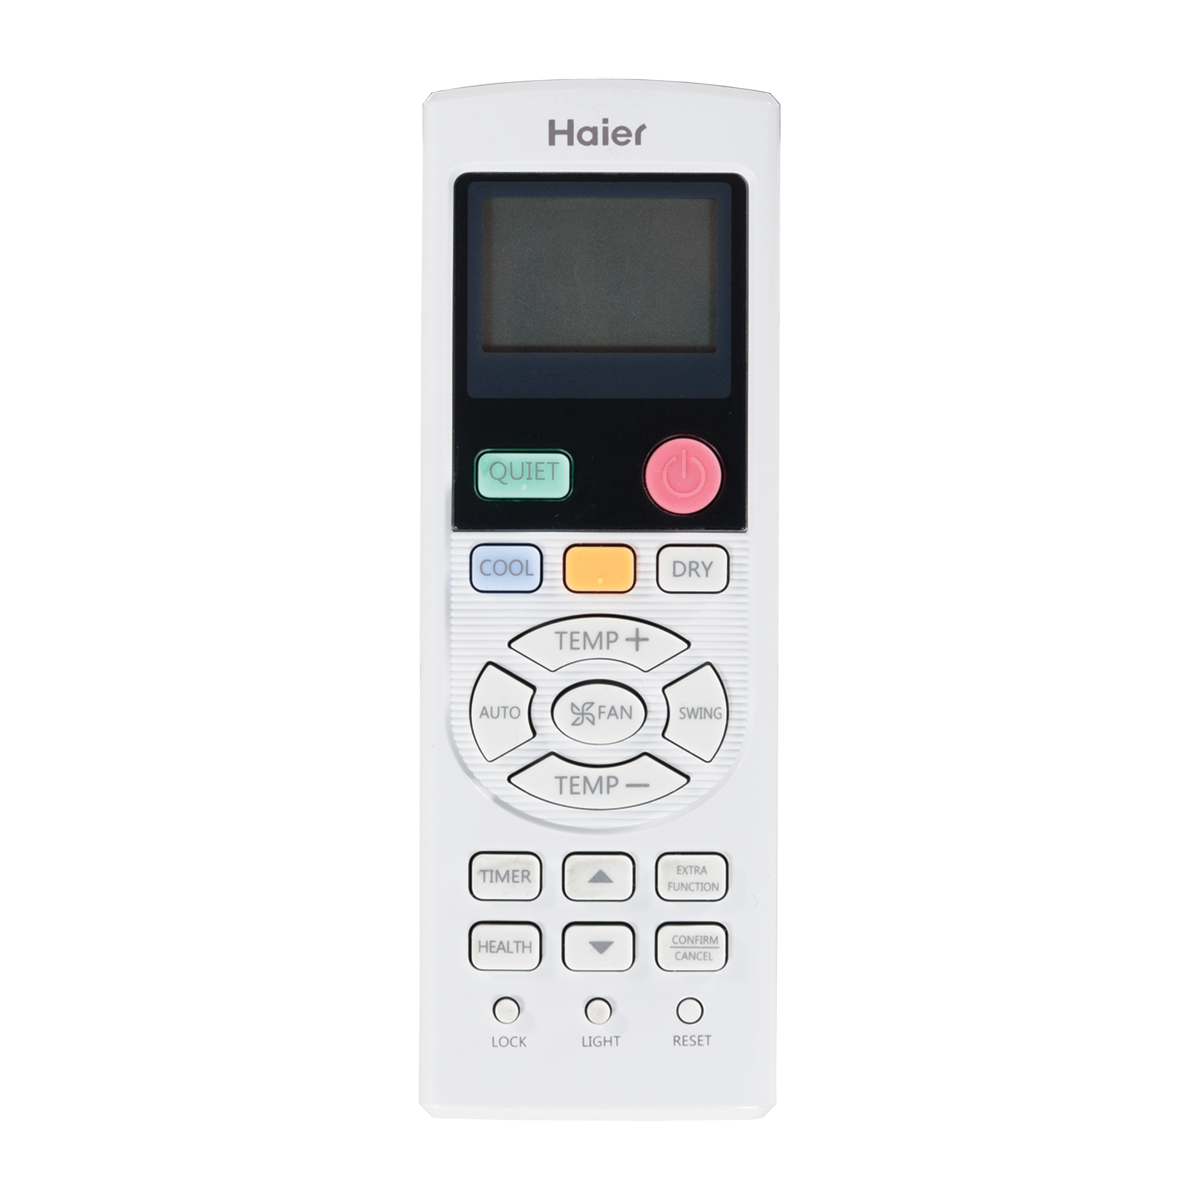 Haier Remote 2 Air conditioning system